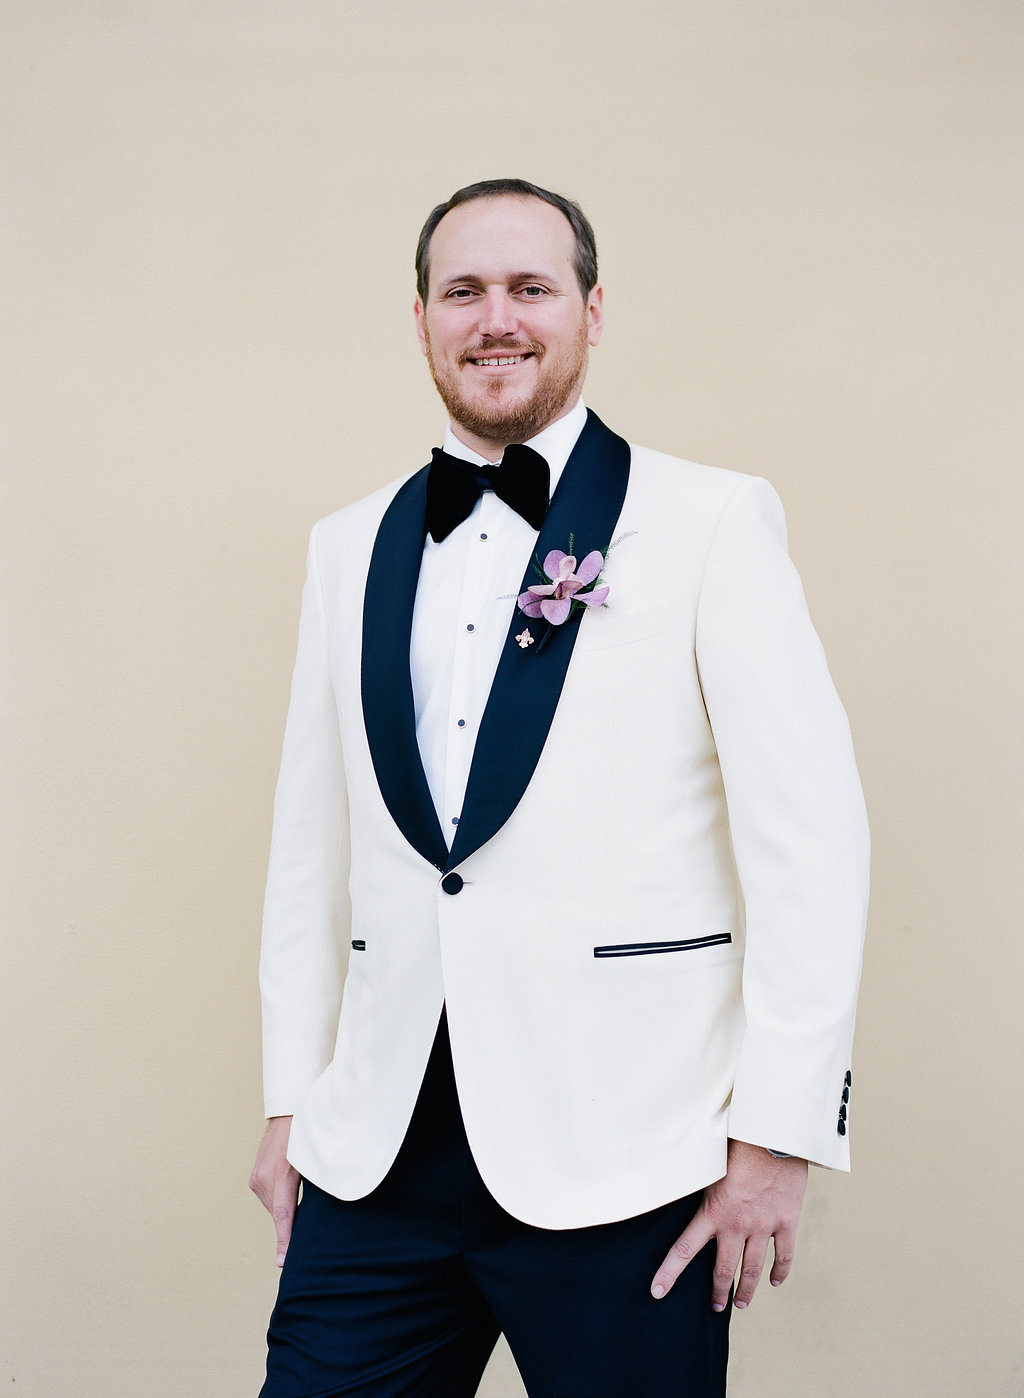 White dinner jacket with black lapel | Groom Style | This is what happens when a bride asks her guests to wear all white | Wedding En Blanc | Sapphire Events | Erika Parker Photography Montegut House | Luxury Wedding | Courtyard wedding | French Quarter Wedding | Luxe Wedding Details